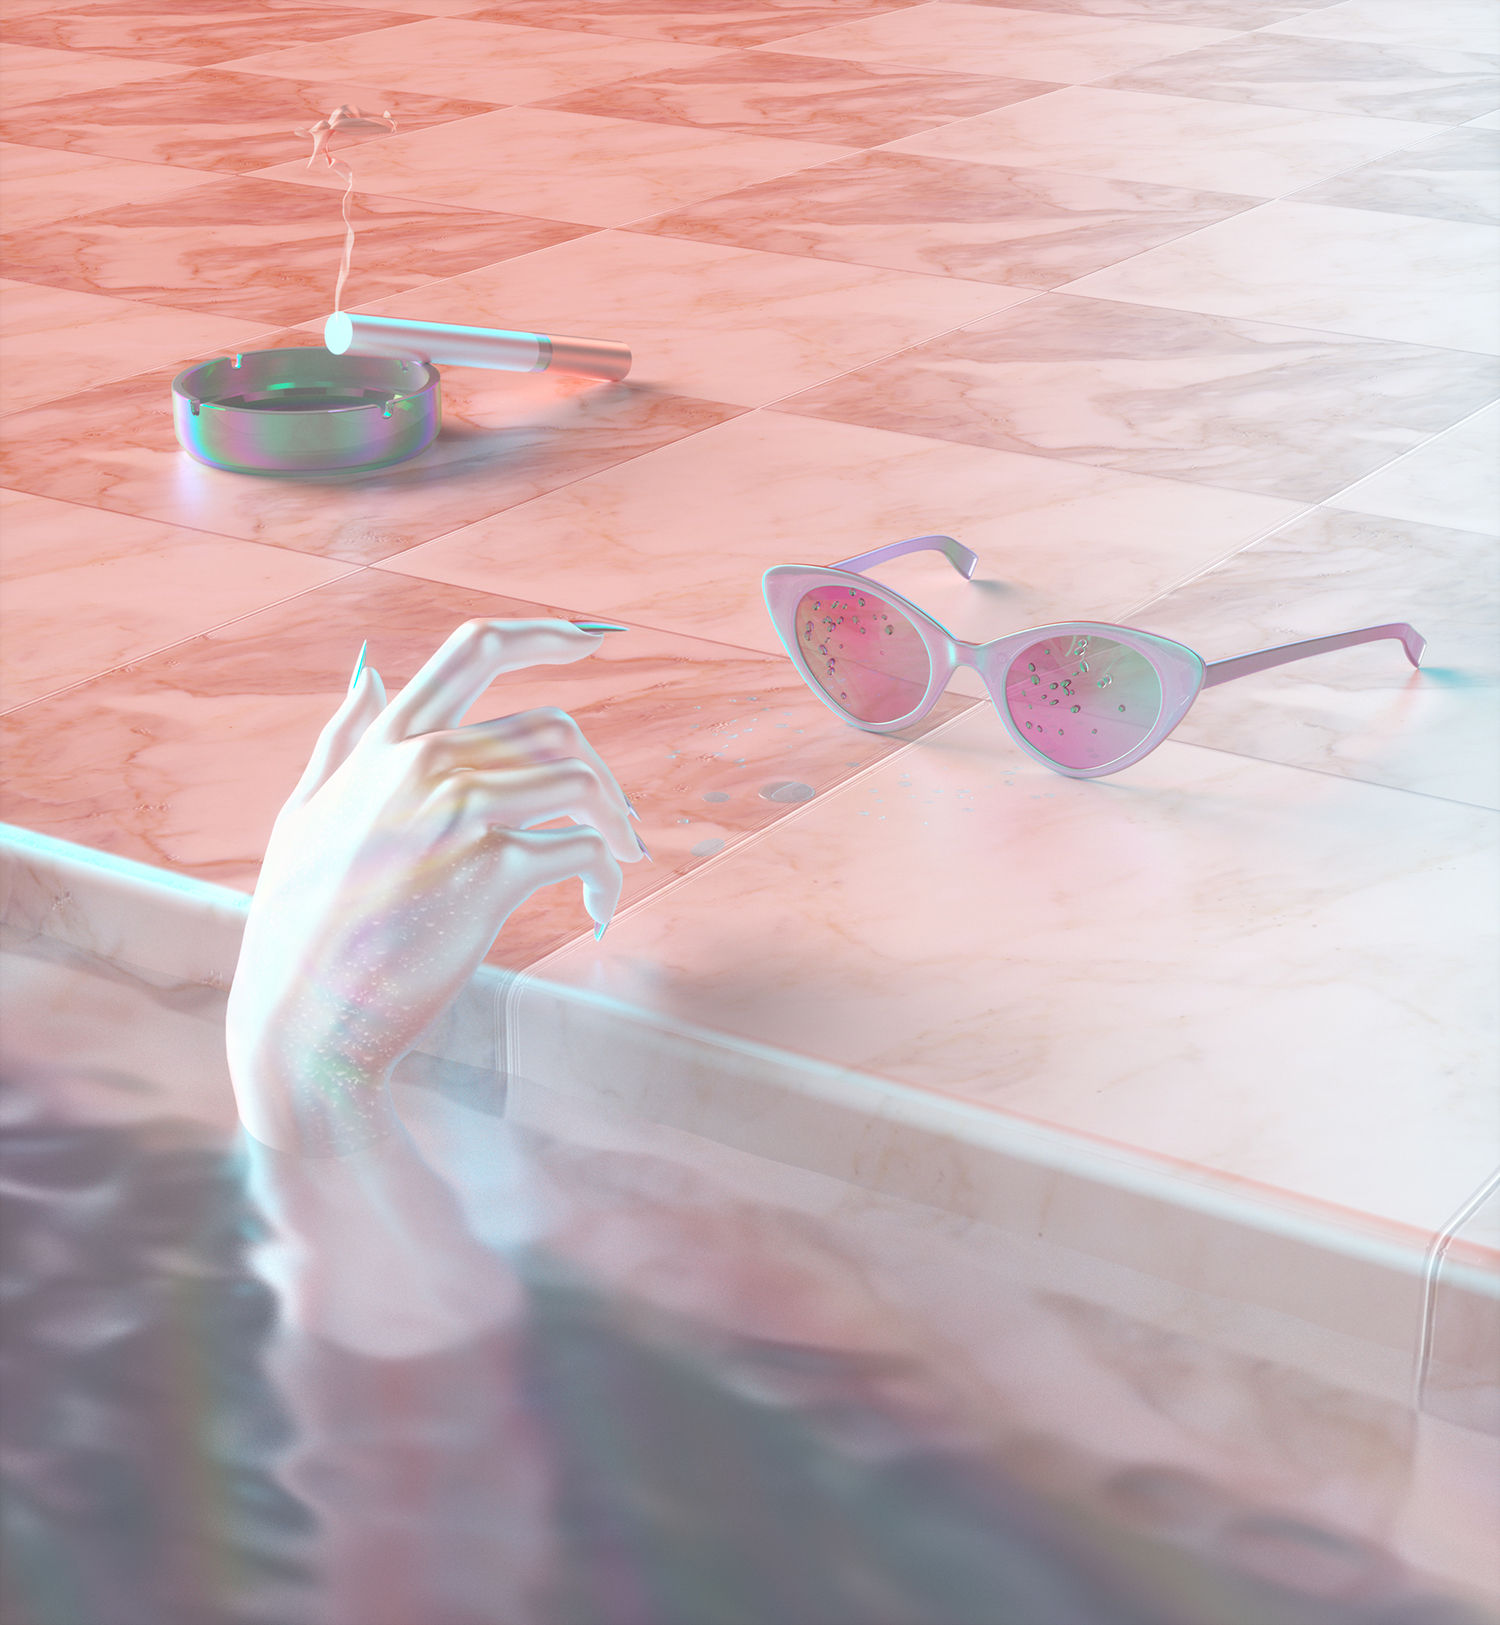 poolside, hand coming out of water, sunglasses, 3d art